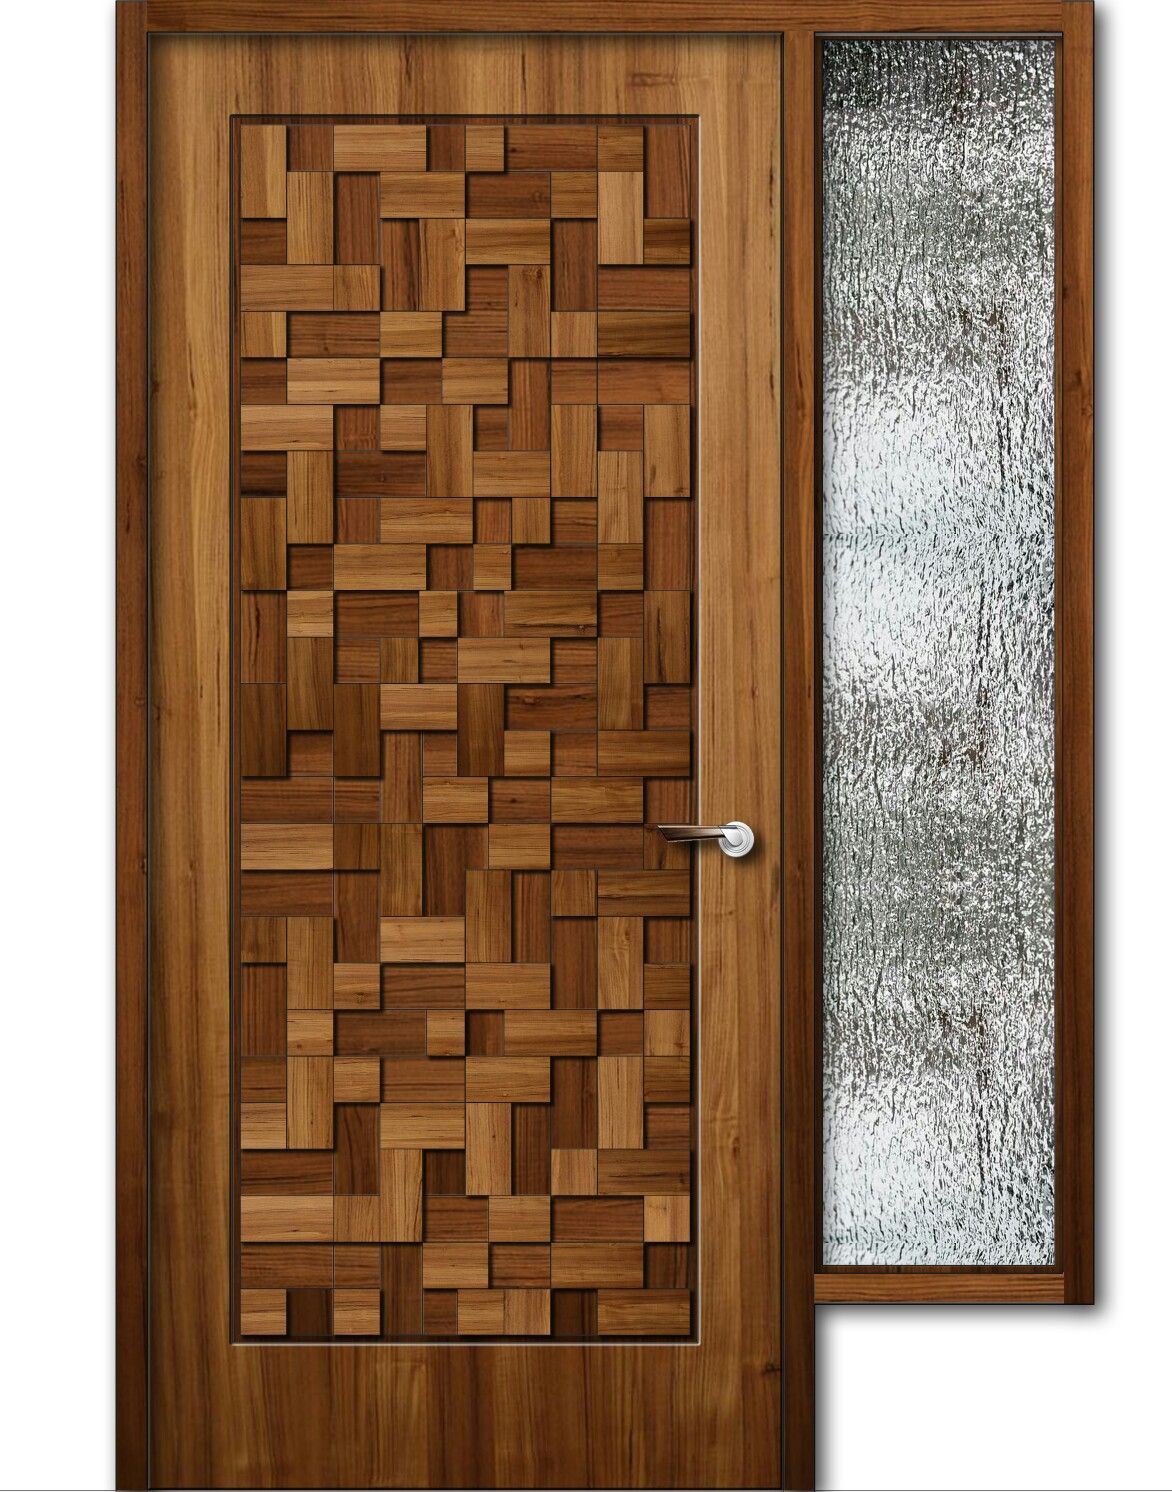 Main Door Design Door Design Modern Wood: Teak Wood Finish Wooden Door With Window, 8feet Height